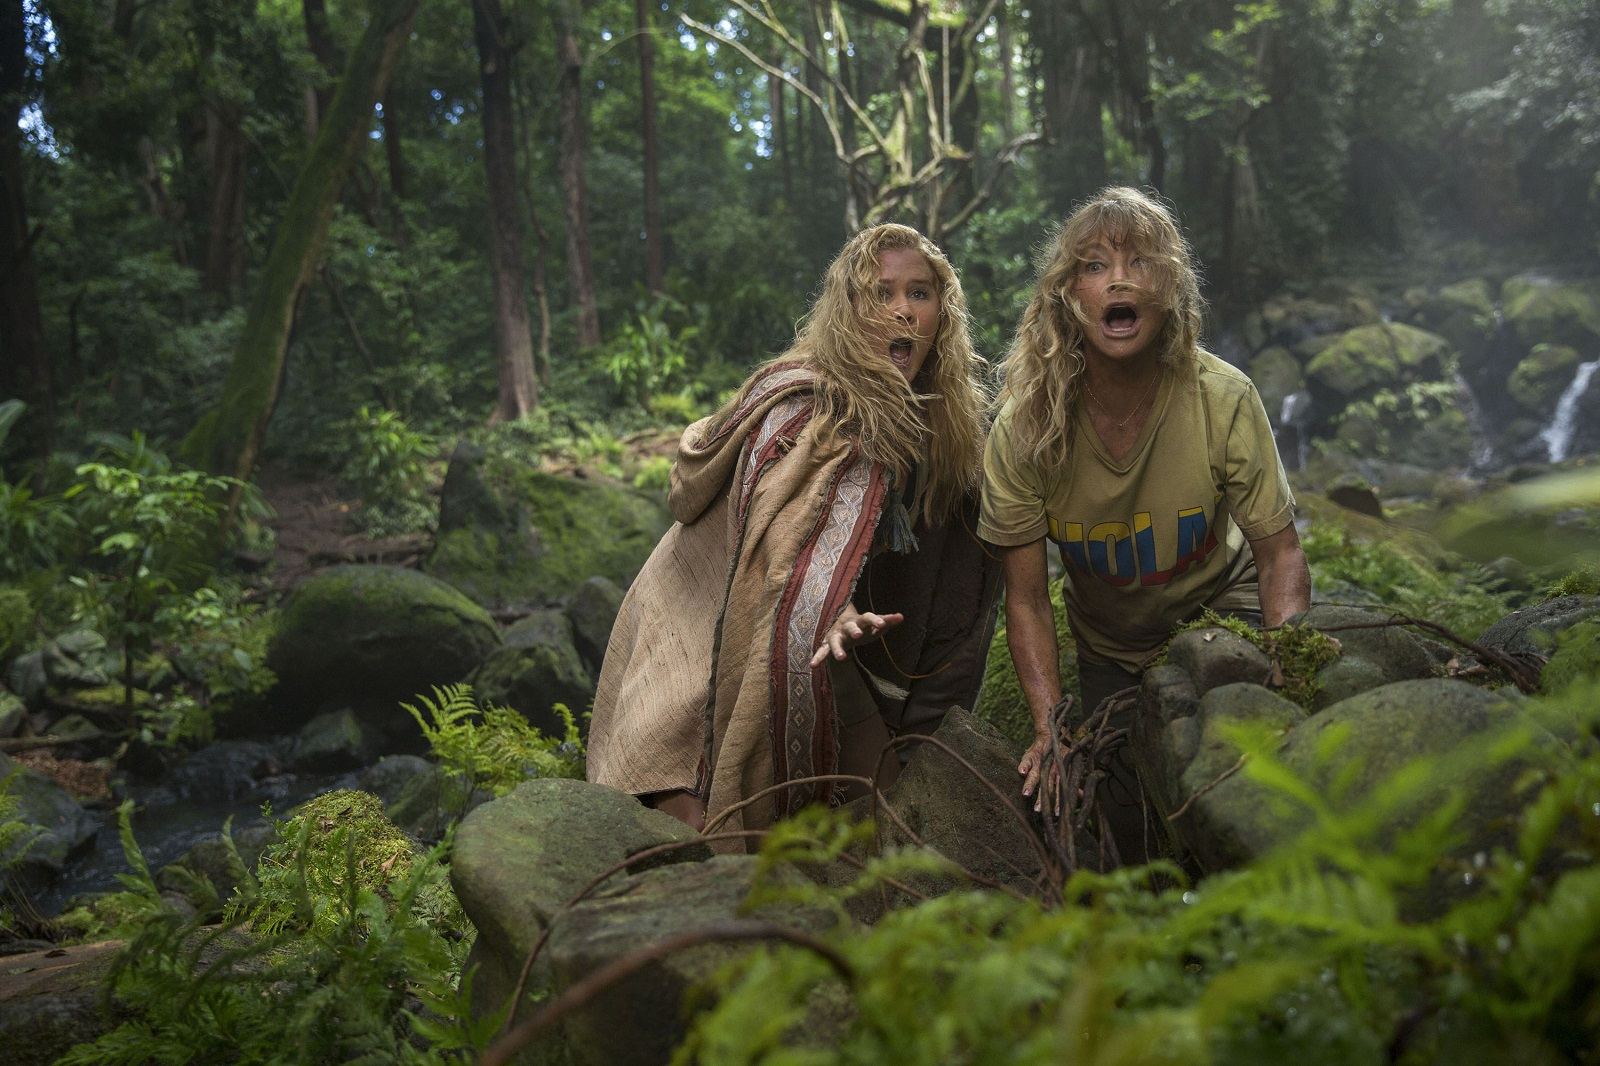 Amy Schumer and Goldie Hawn in the film 'Snatched.' (Justina Mintz/20th Century Fox)